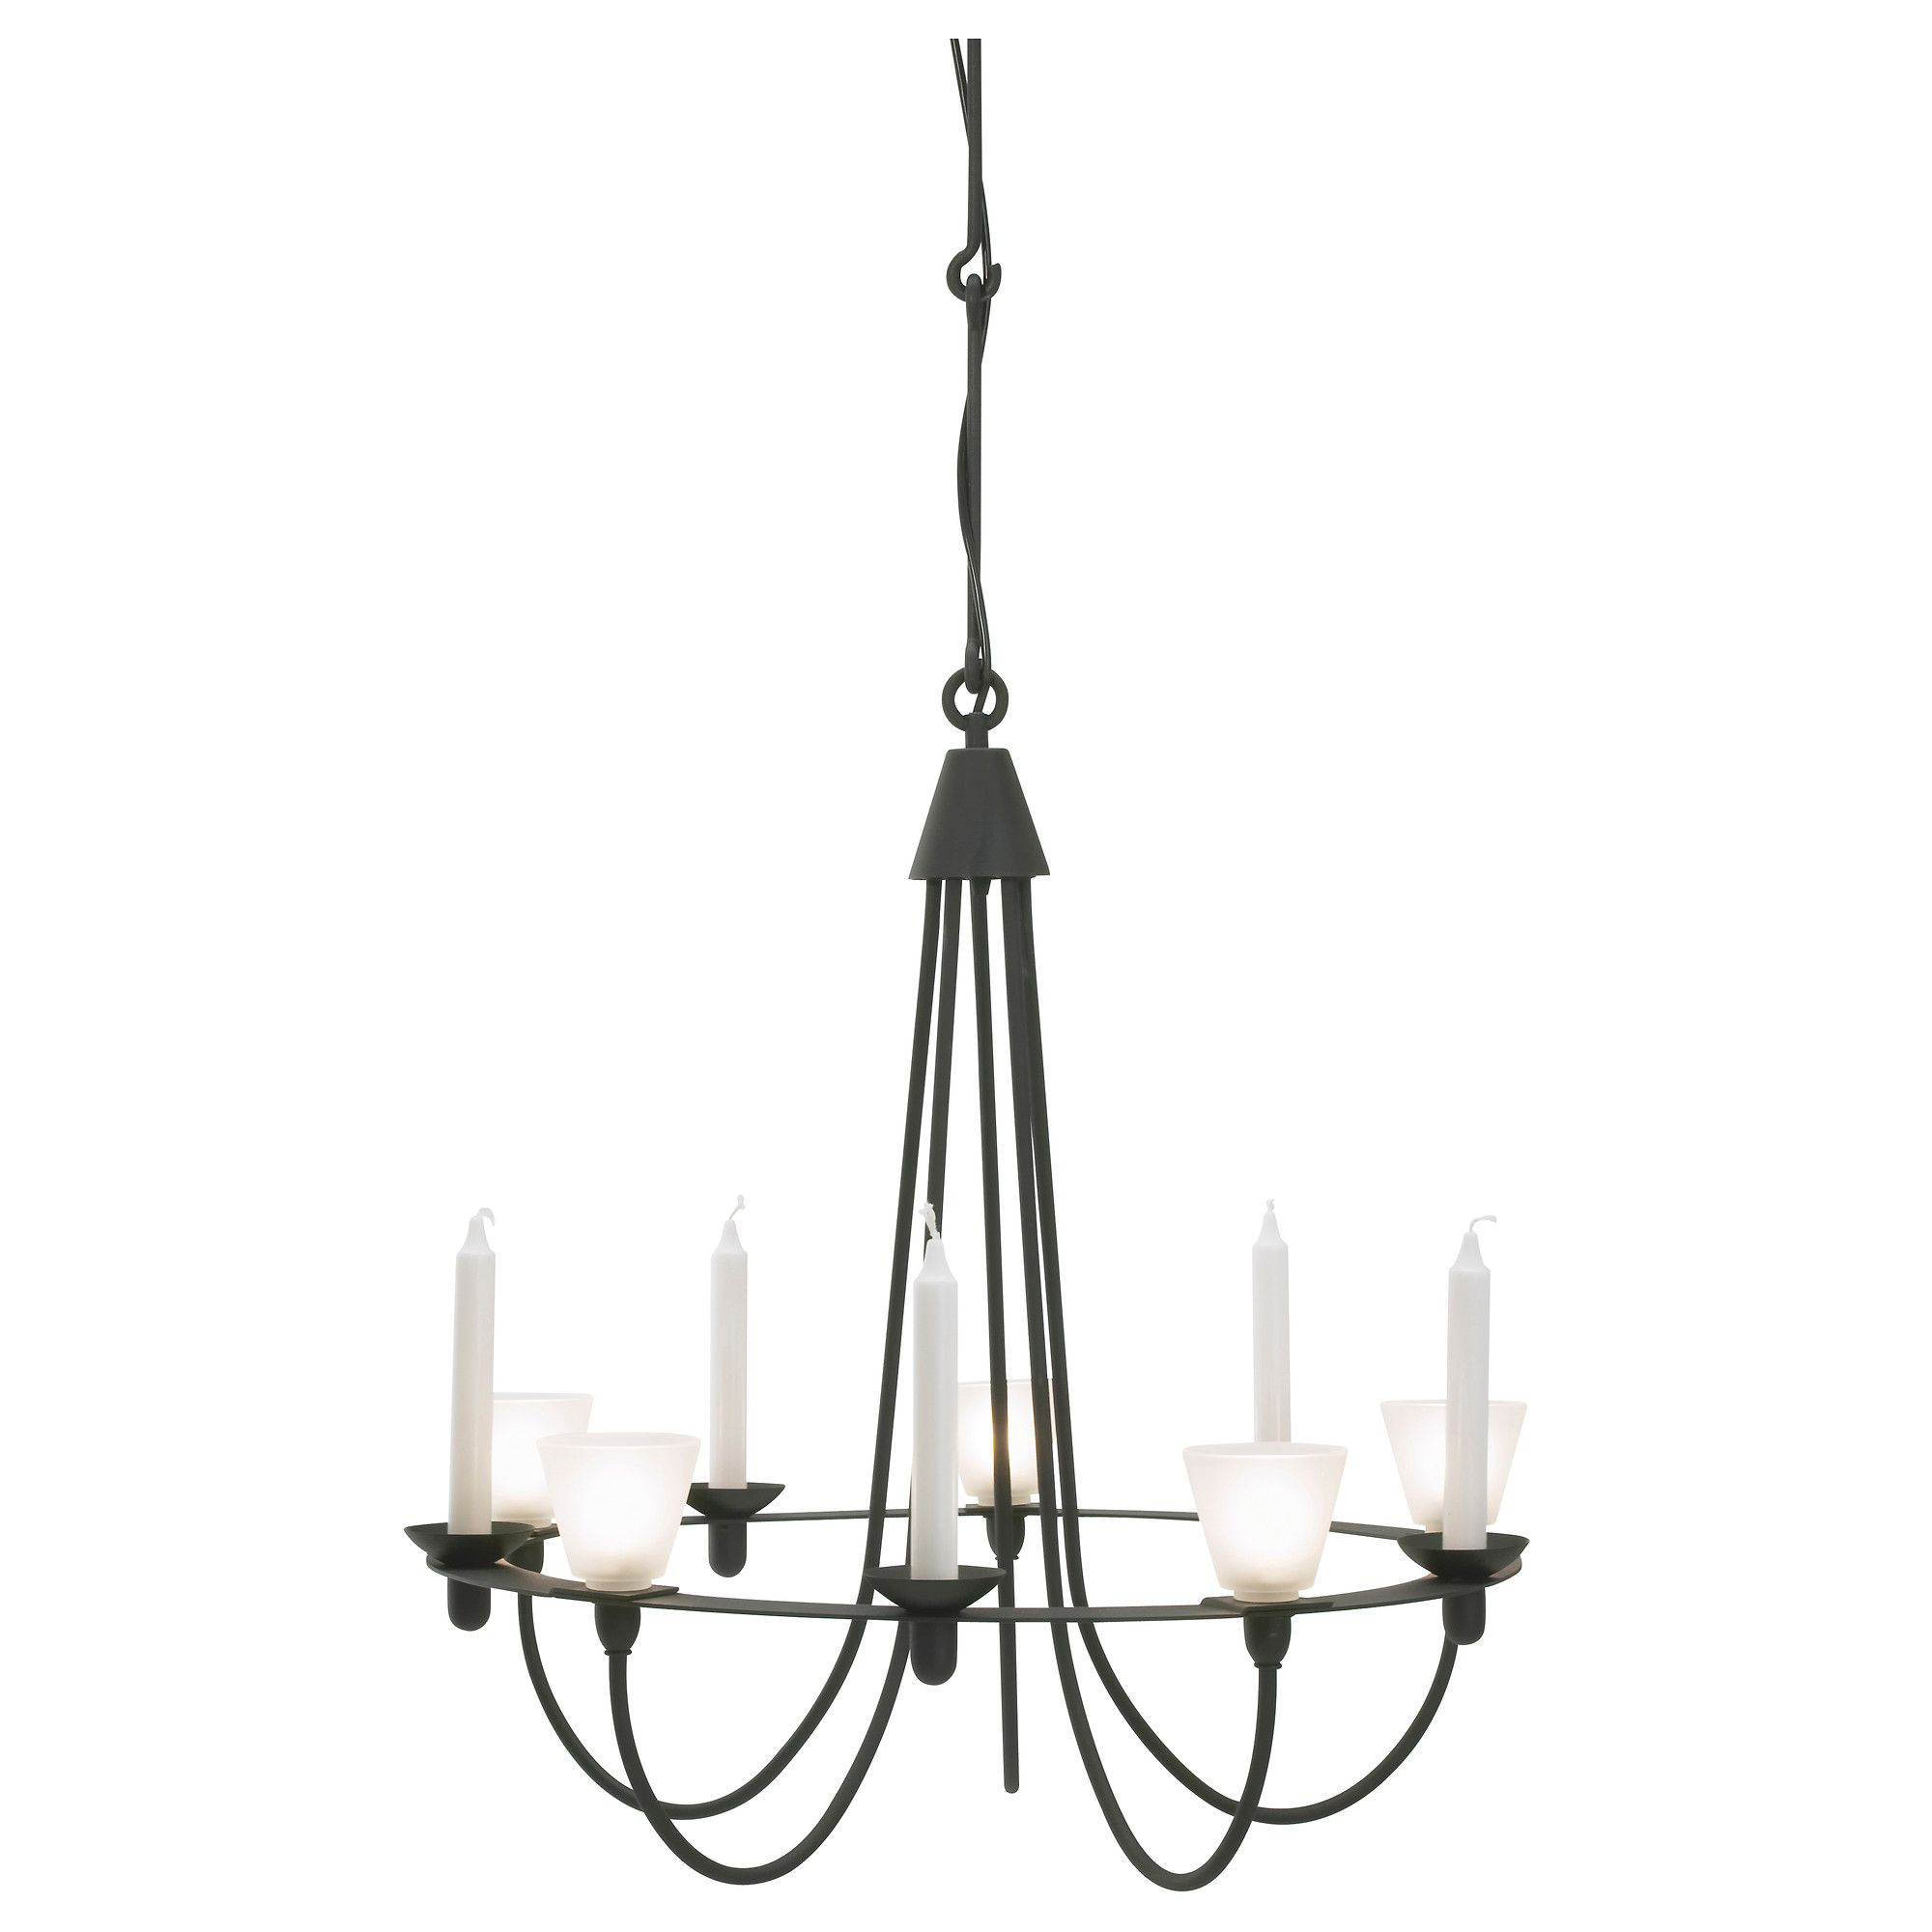 Lerdal chandelier ikea can be used with both electric lights and lerdal chandelier ikea can be used with both electric lights and candles easy to adjust the height with the hooks aloadofball Choice Image